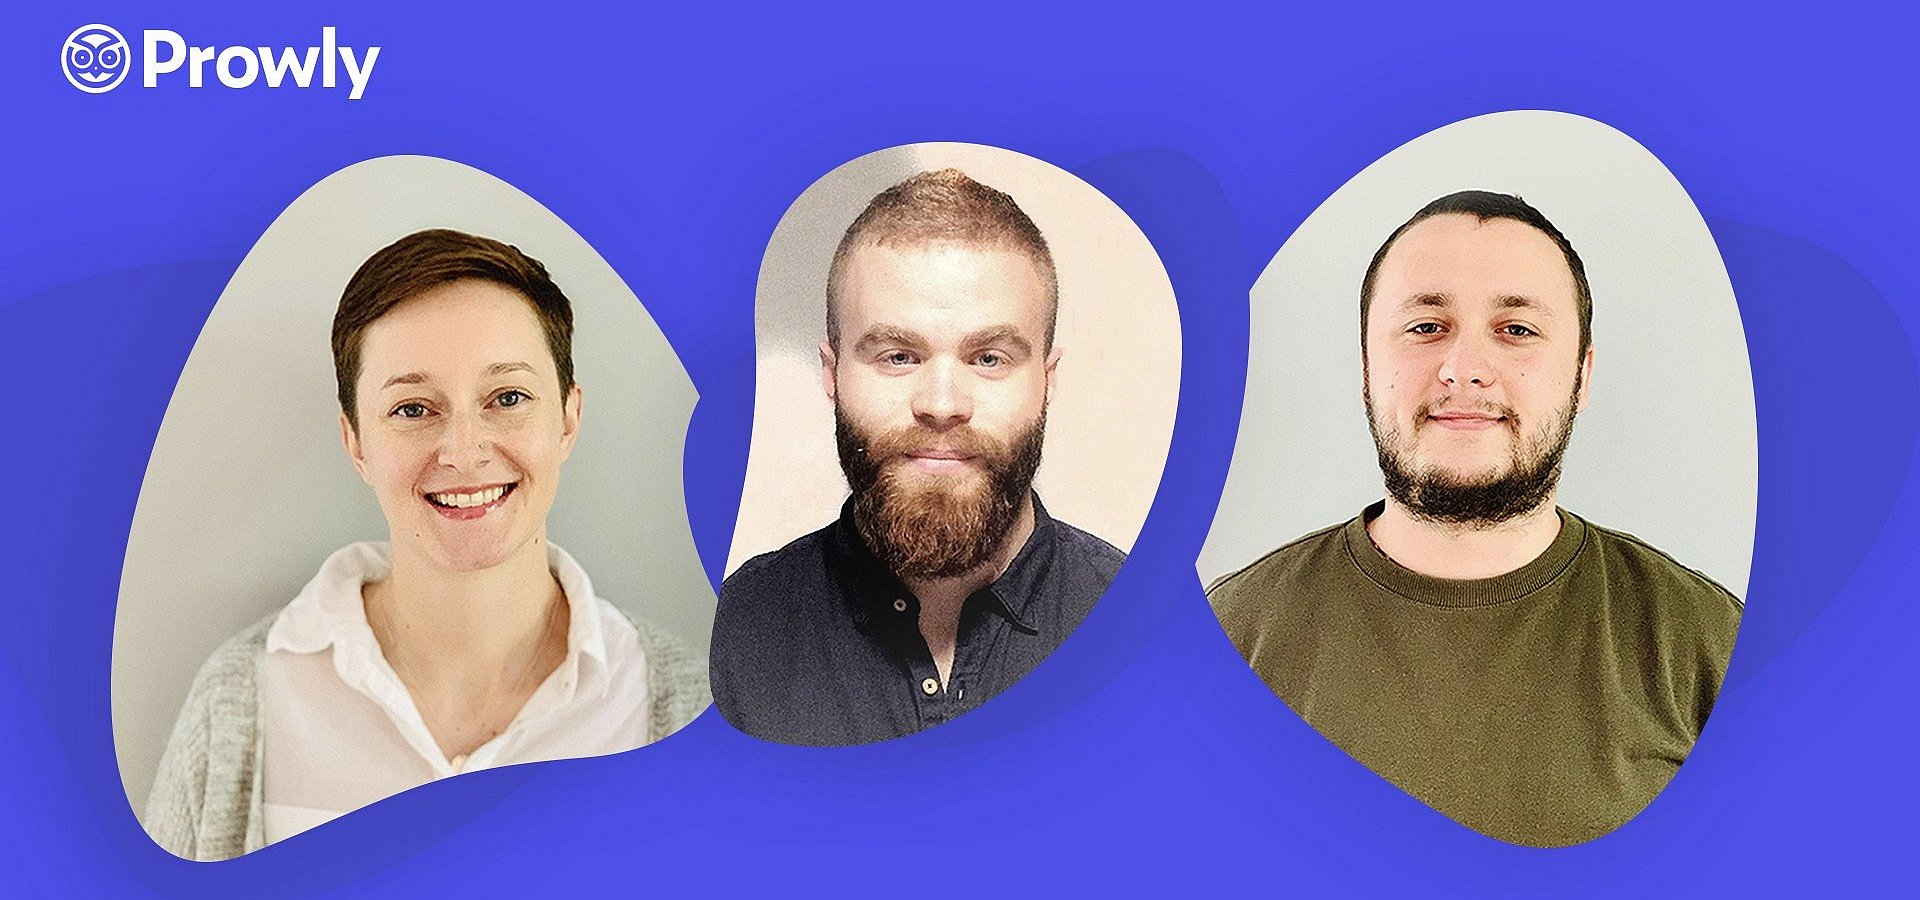 Prowly Welcomes New Leaders and Product Team